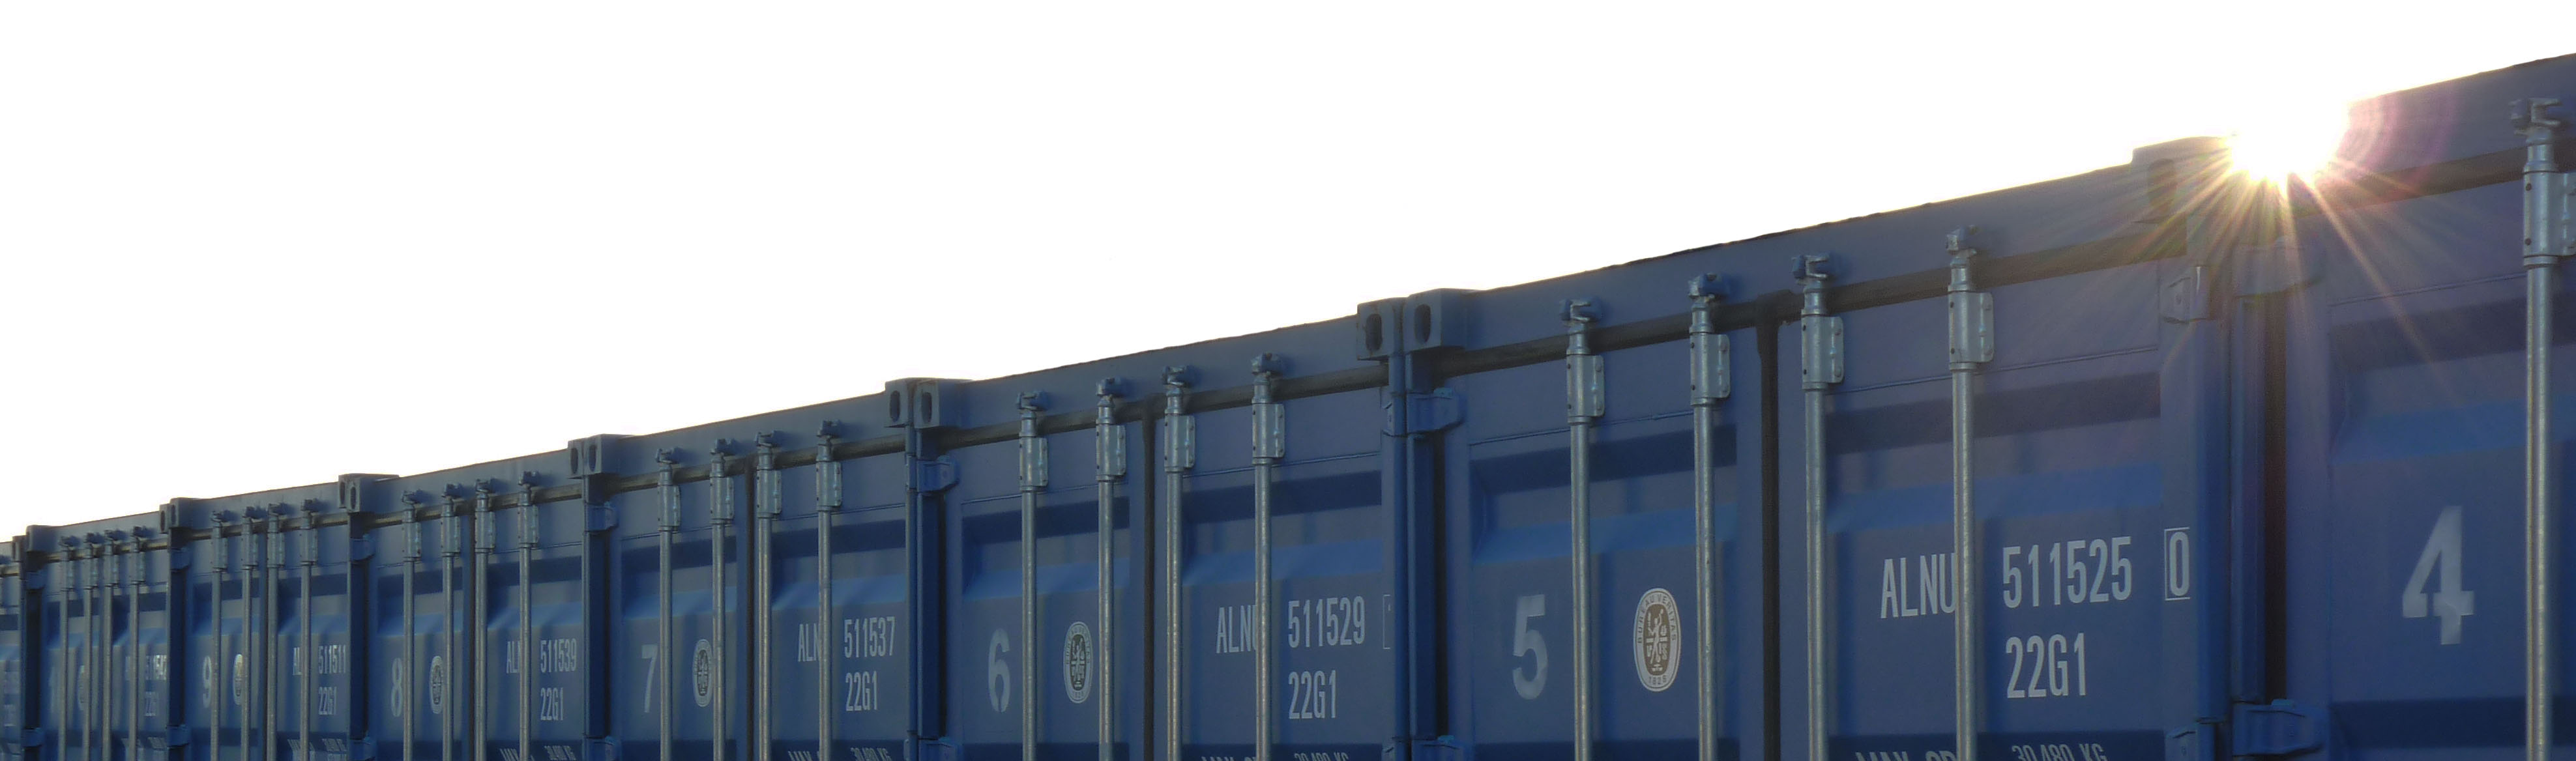 Containers_with_sun_edited.png